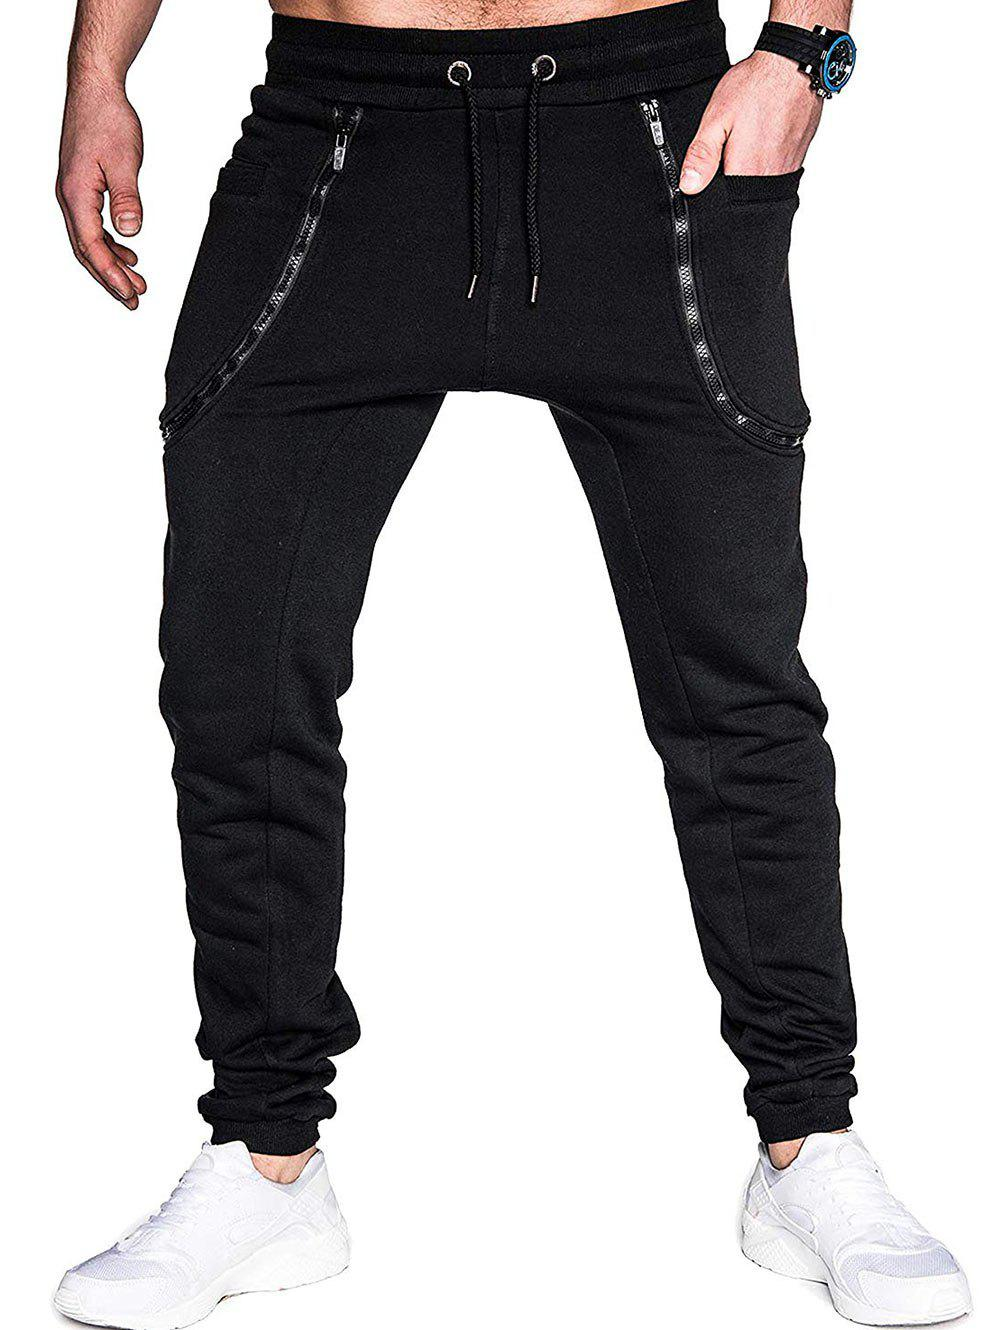 Store Zippers Solid Color Casual Jogger Pants